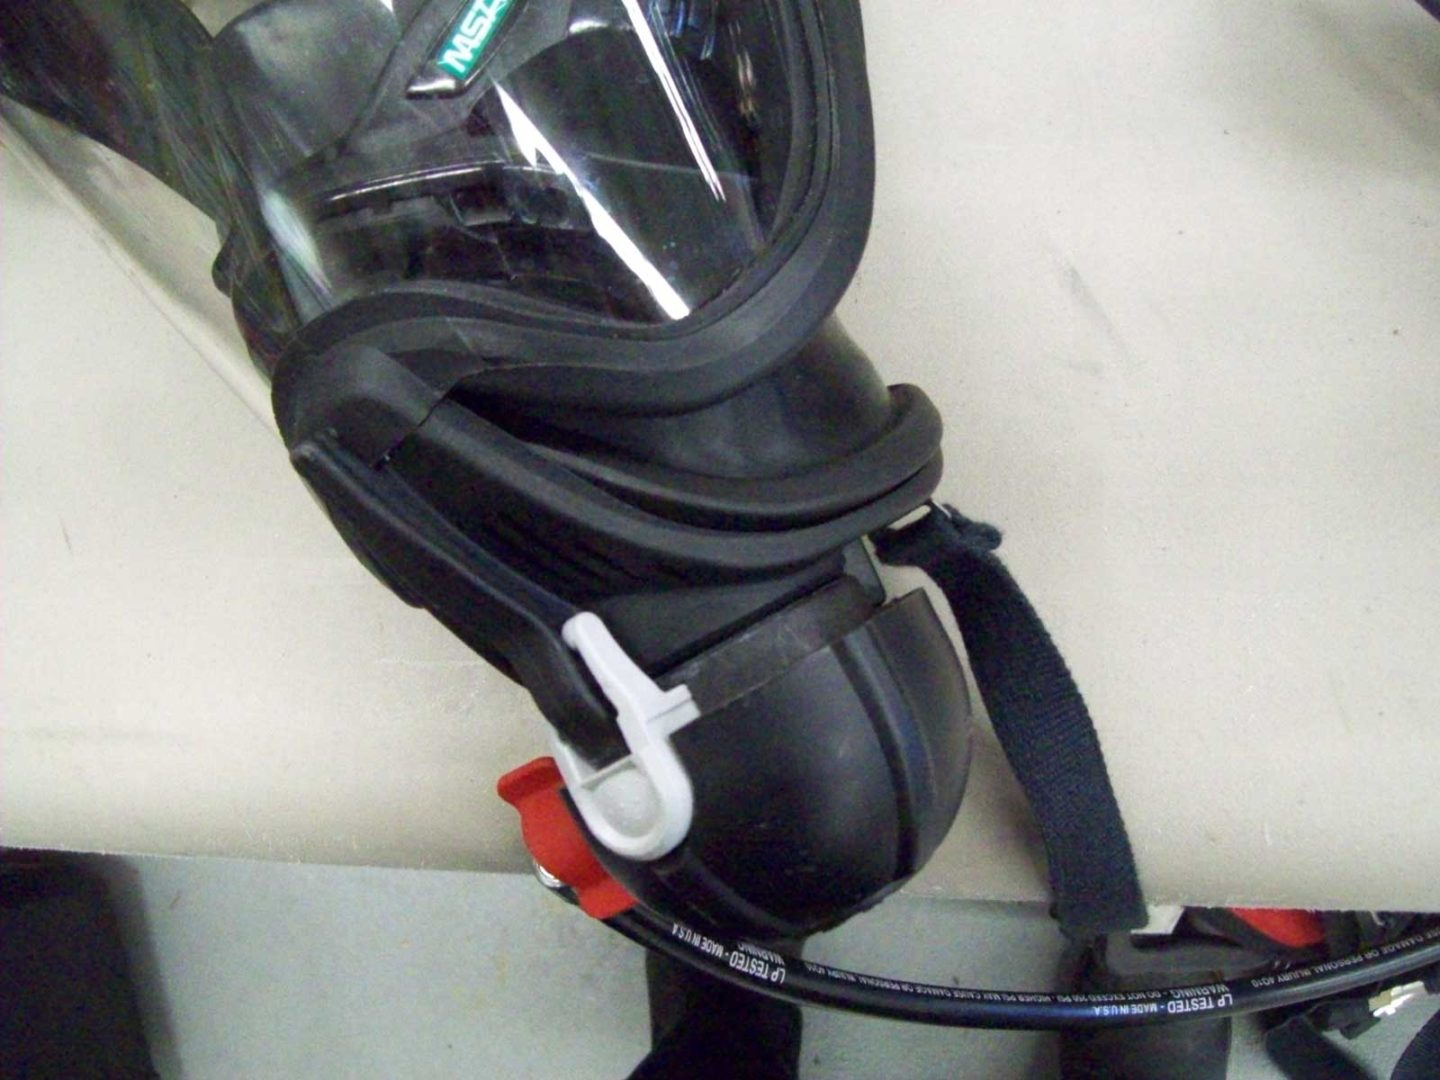 SCBA mask-mounted regulator connected to a face piece